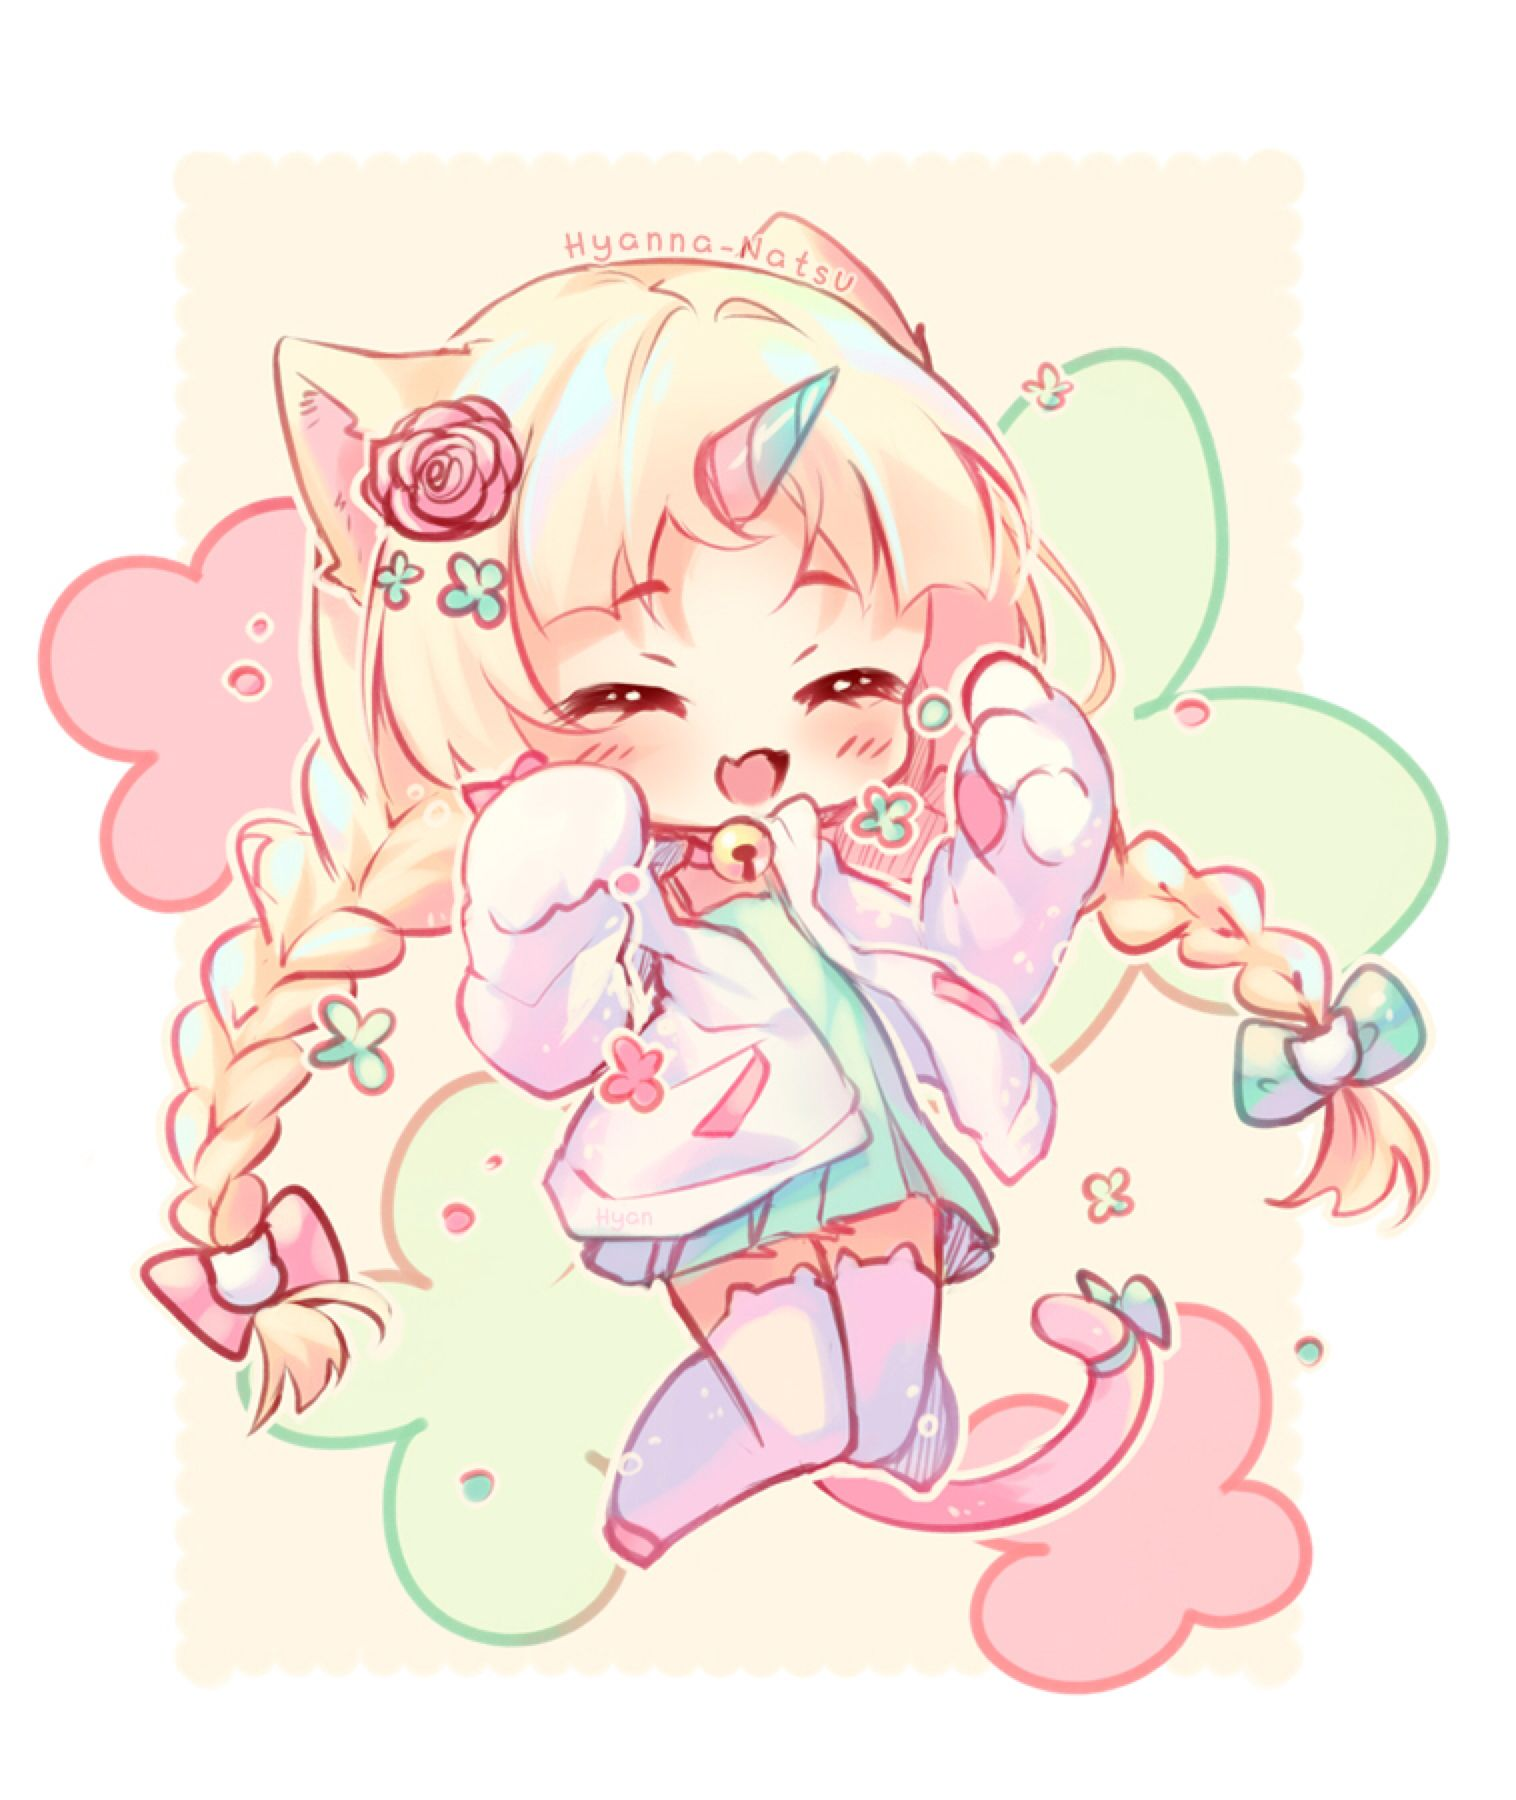 Video Commission Unicat By Hyanna Natsu On Deviantart Chibi Anime Kawaii Chibi Girl Drawings Cute Anime Chibi